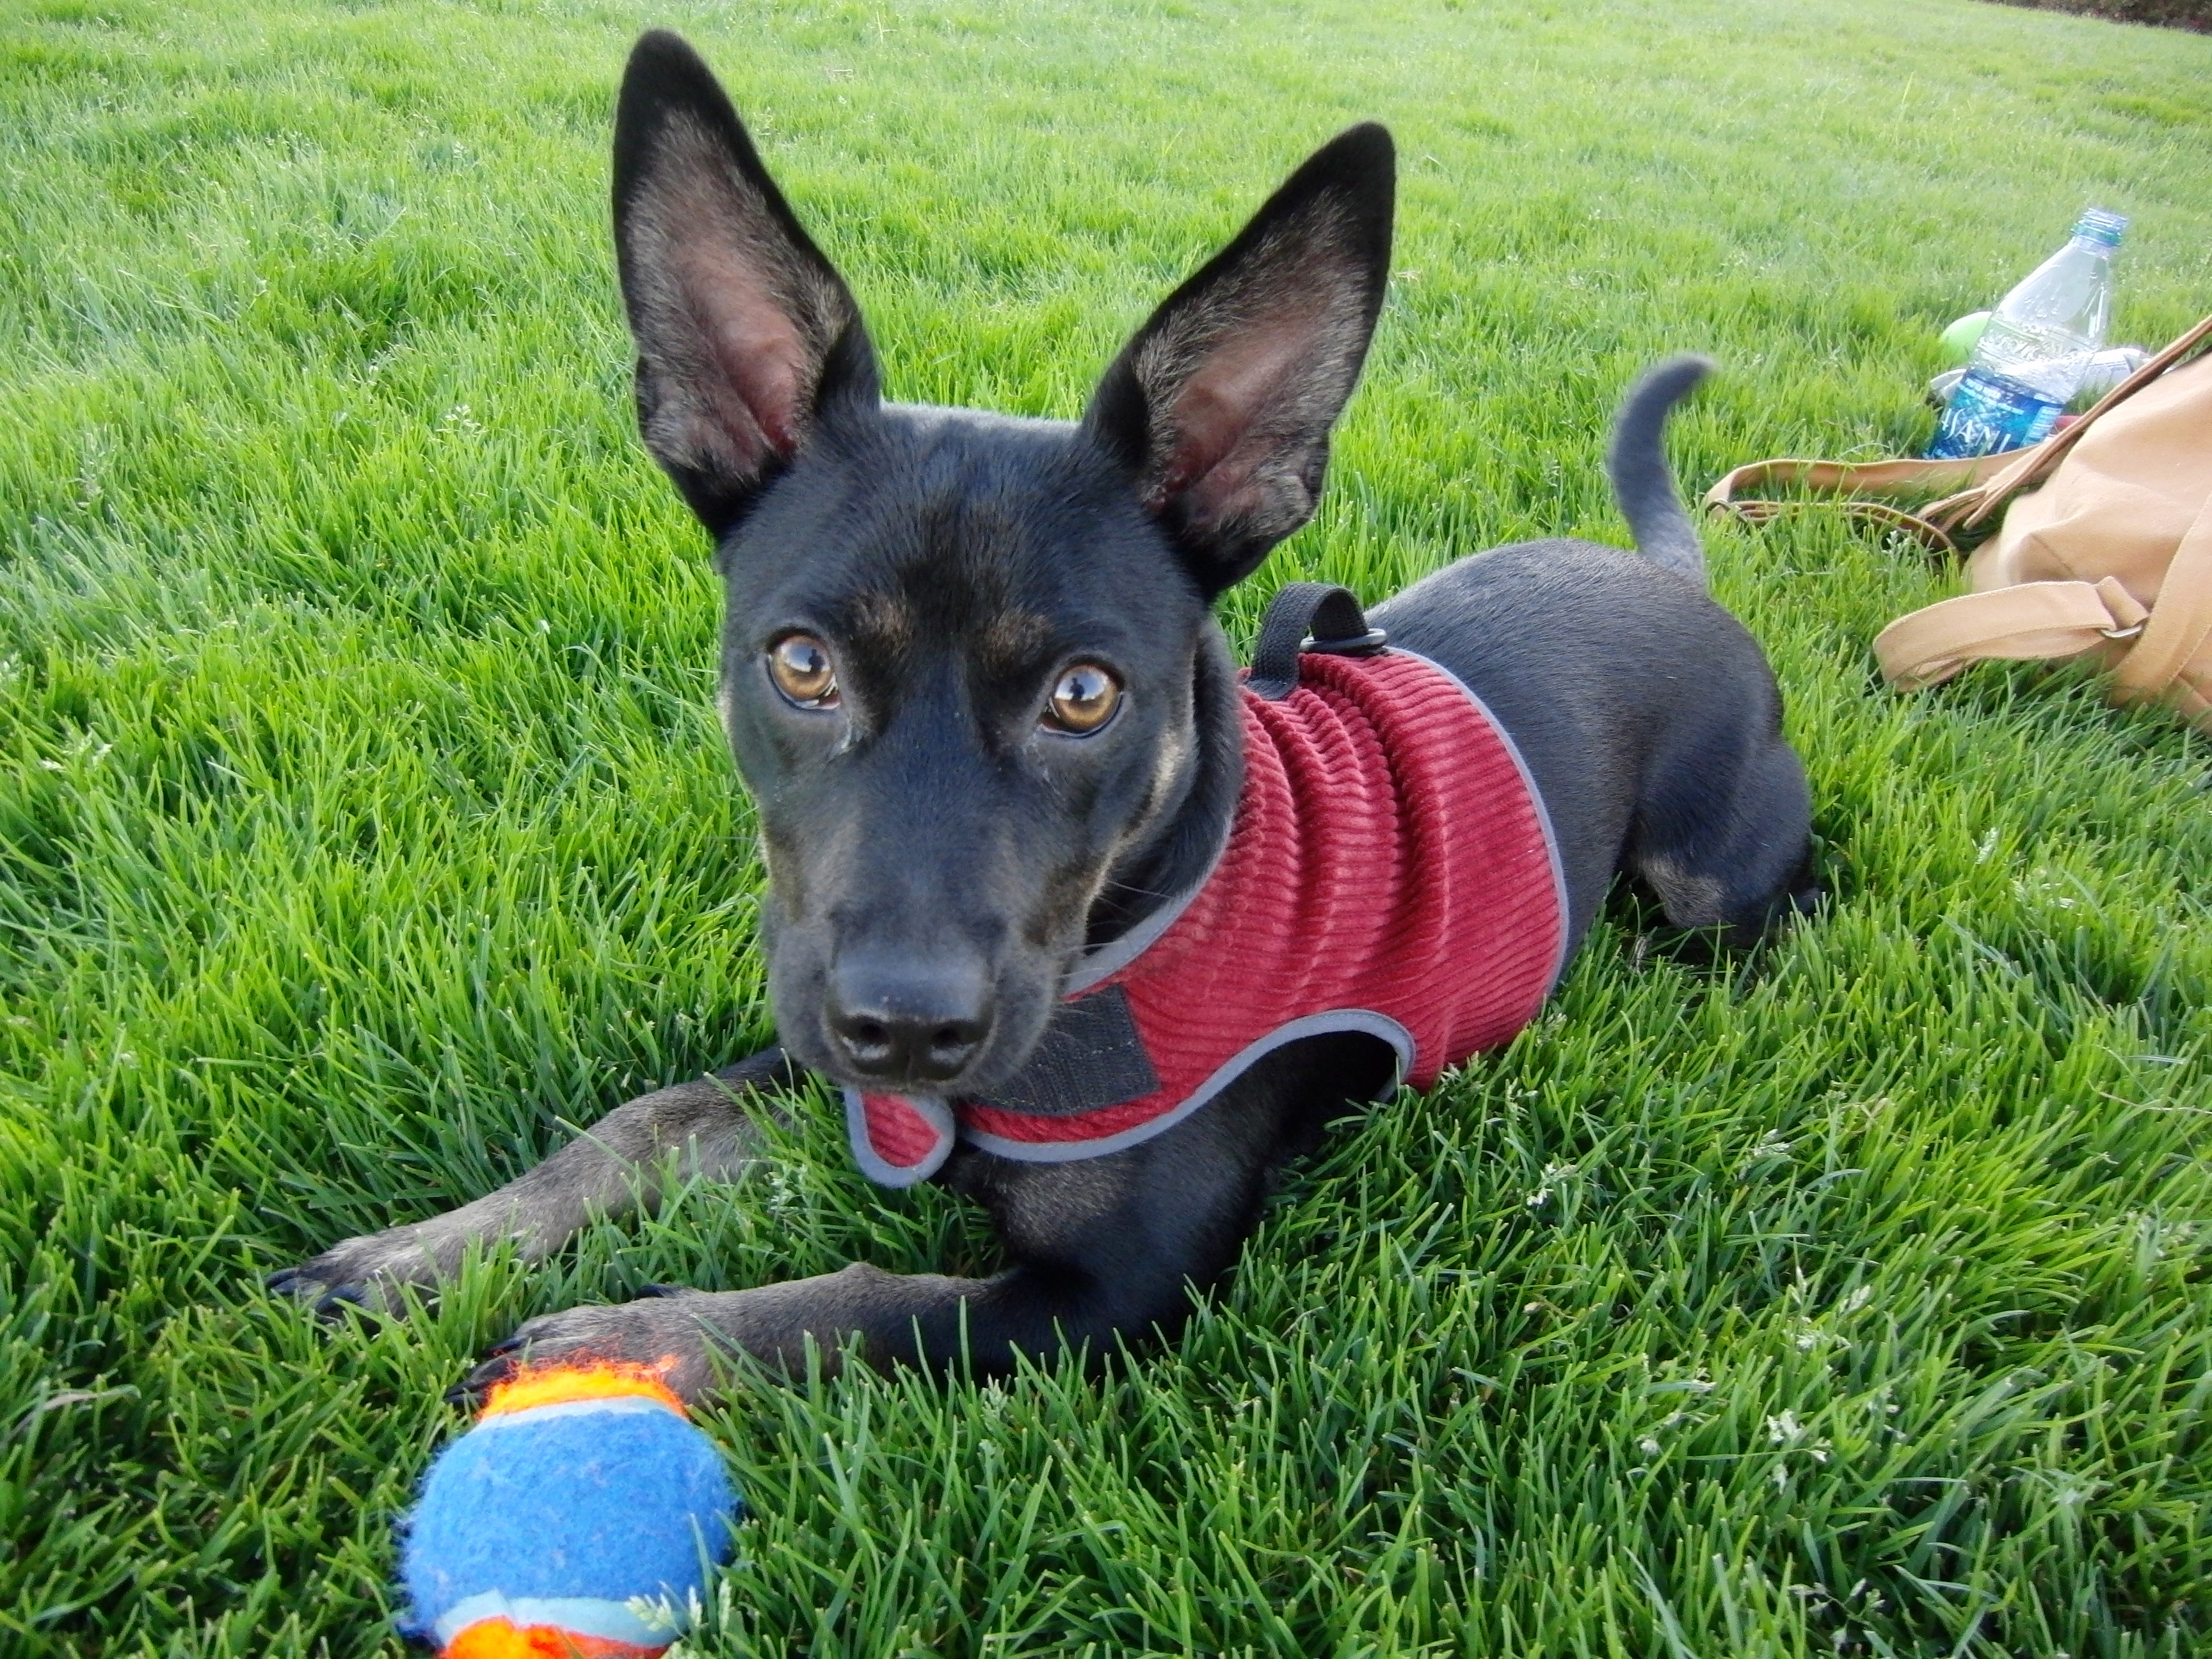 Can a Chihuahua and a German Shepherd mate